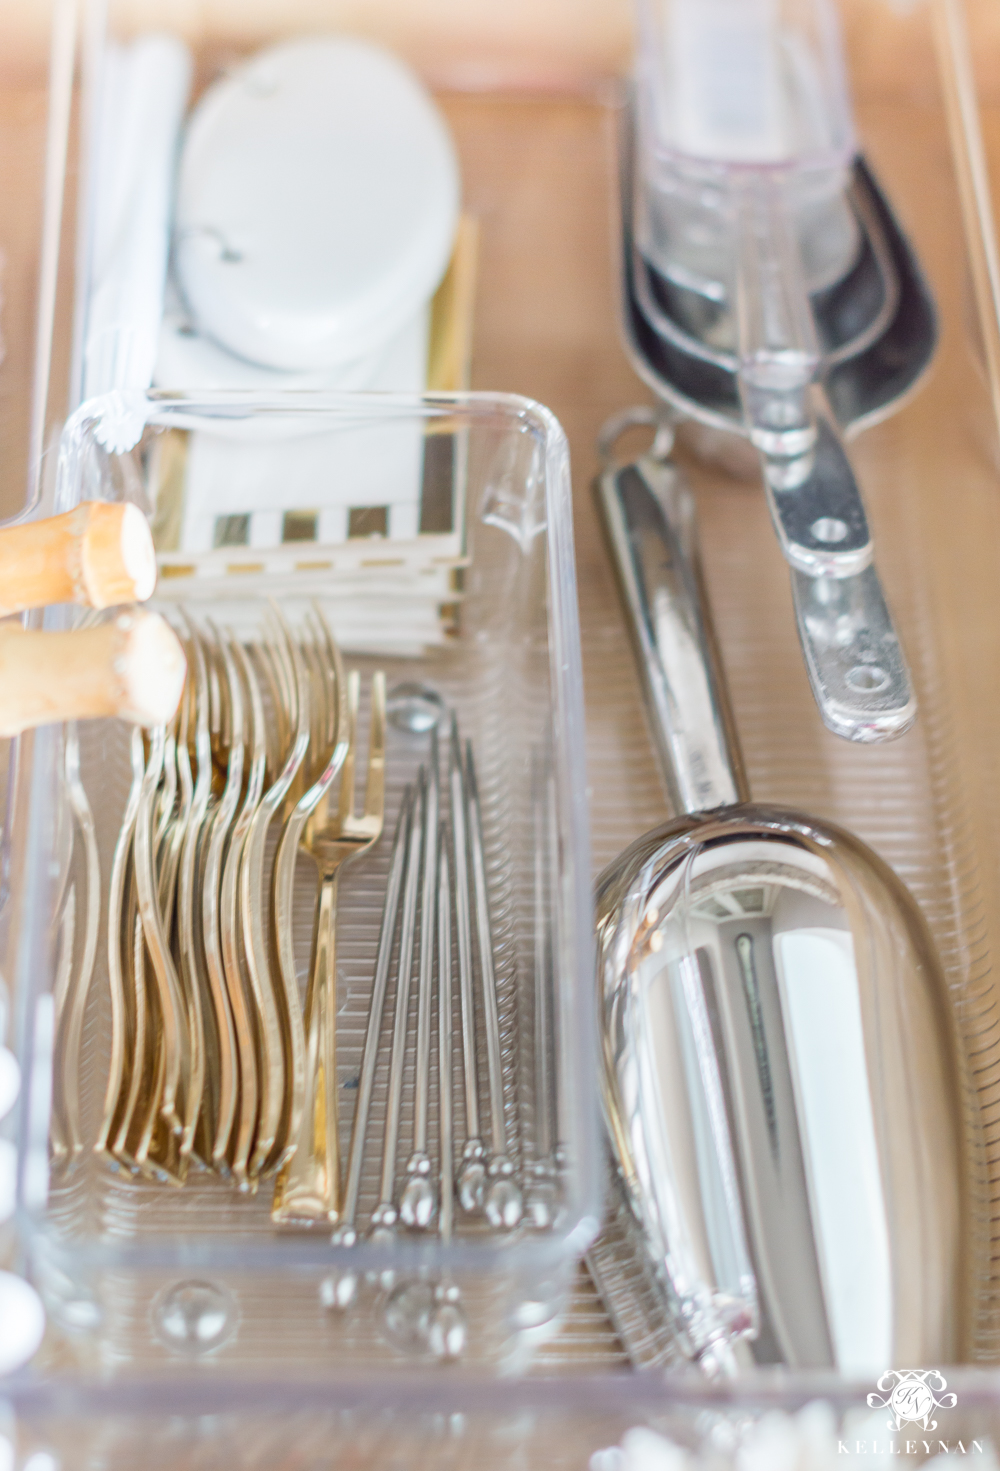 Barware Tool Organization in a Butler's Pantry